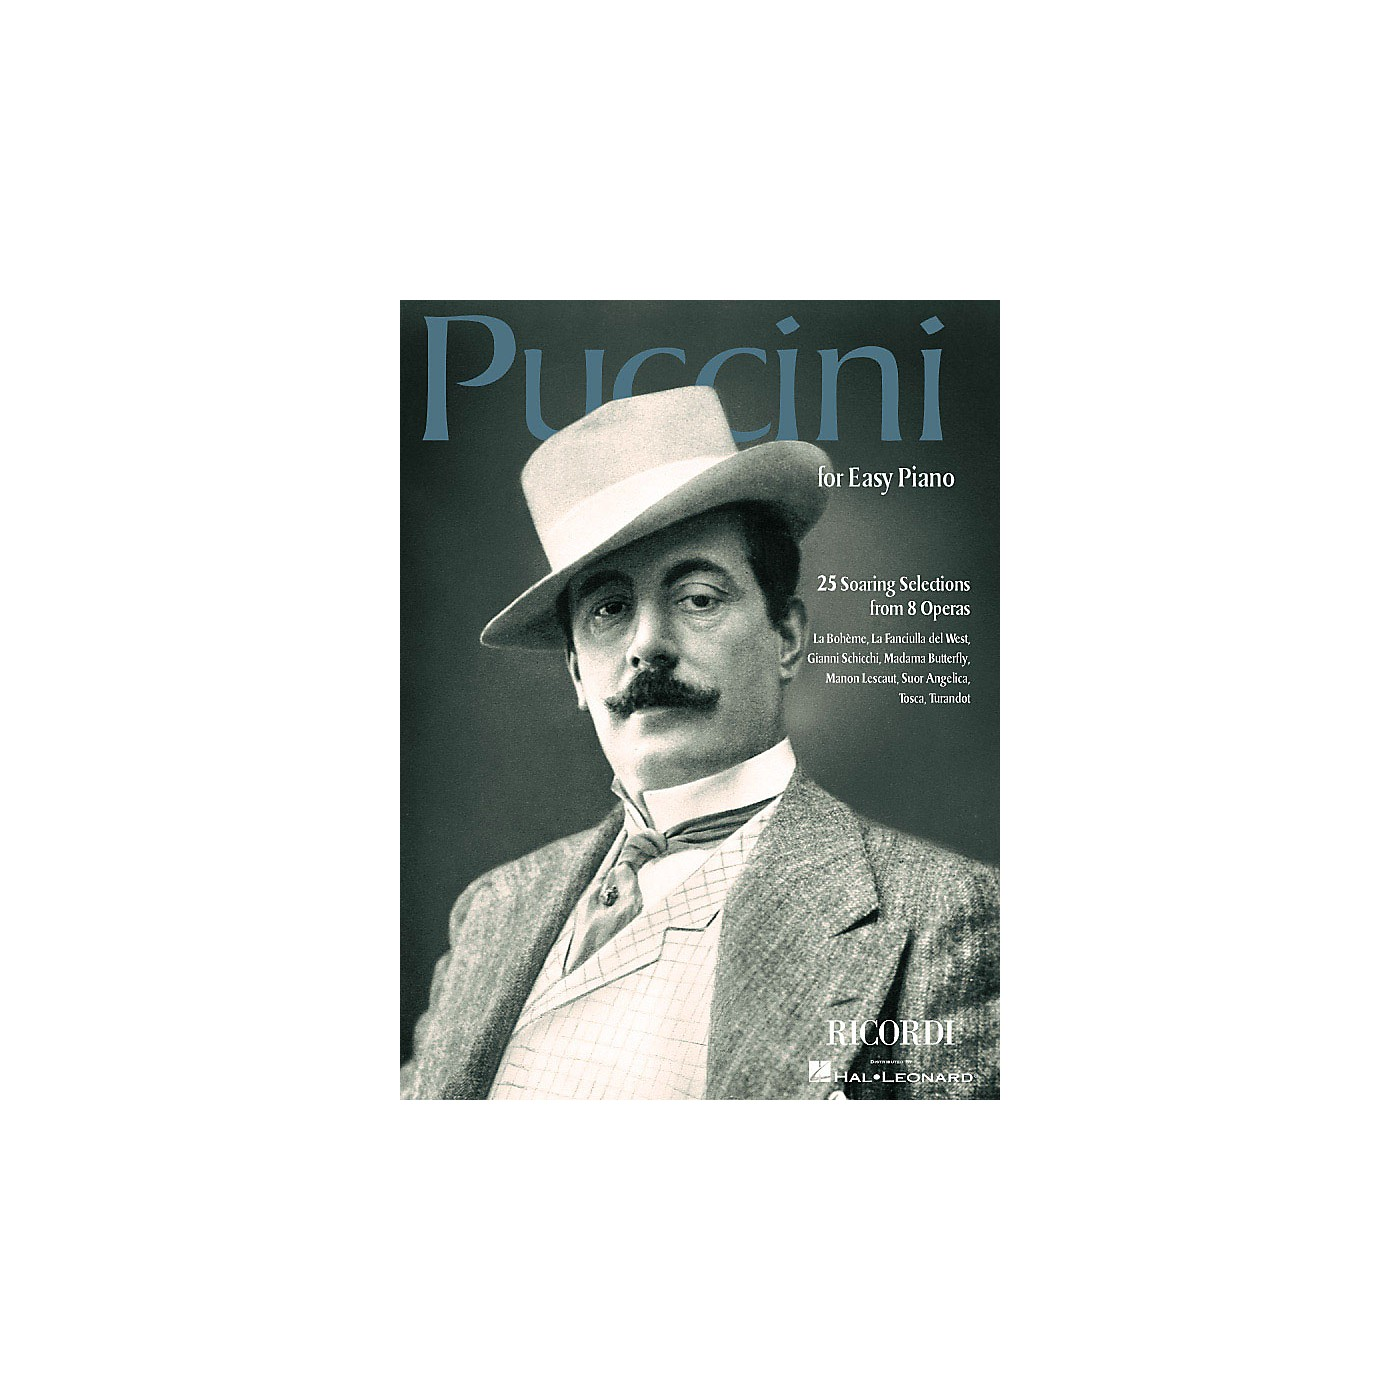 Ricordi Puccini for Easy Piano (25 Soaring Selections from 8 Operas) Misc Series thumbnail